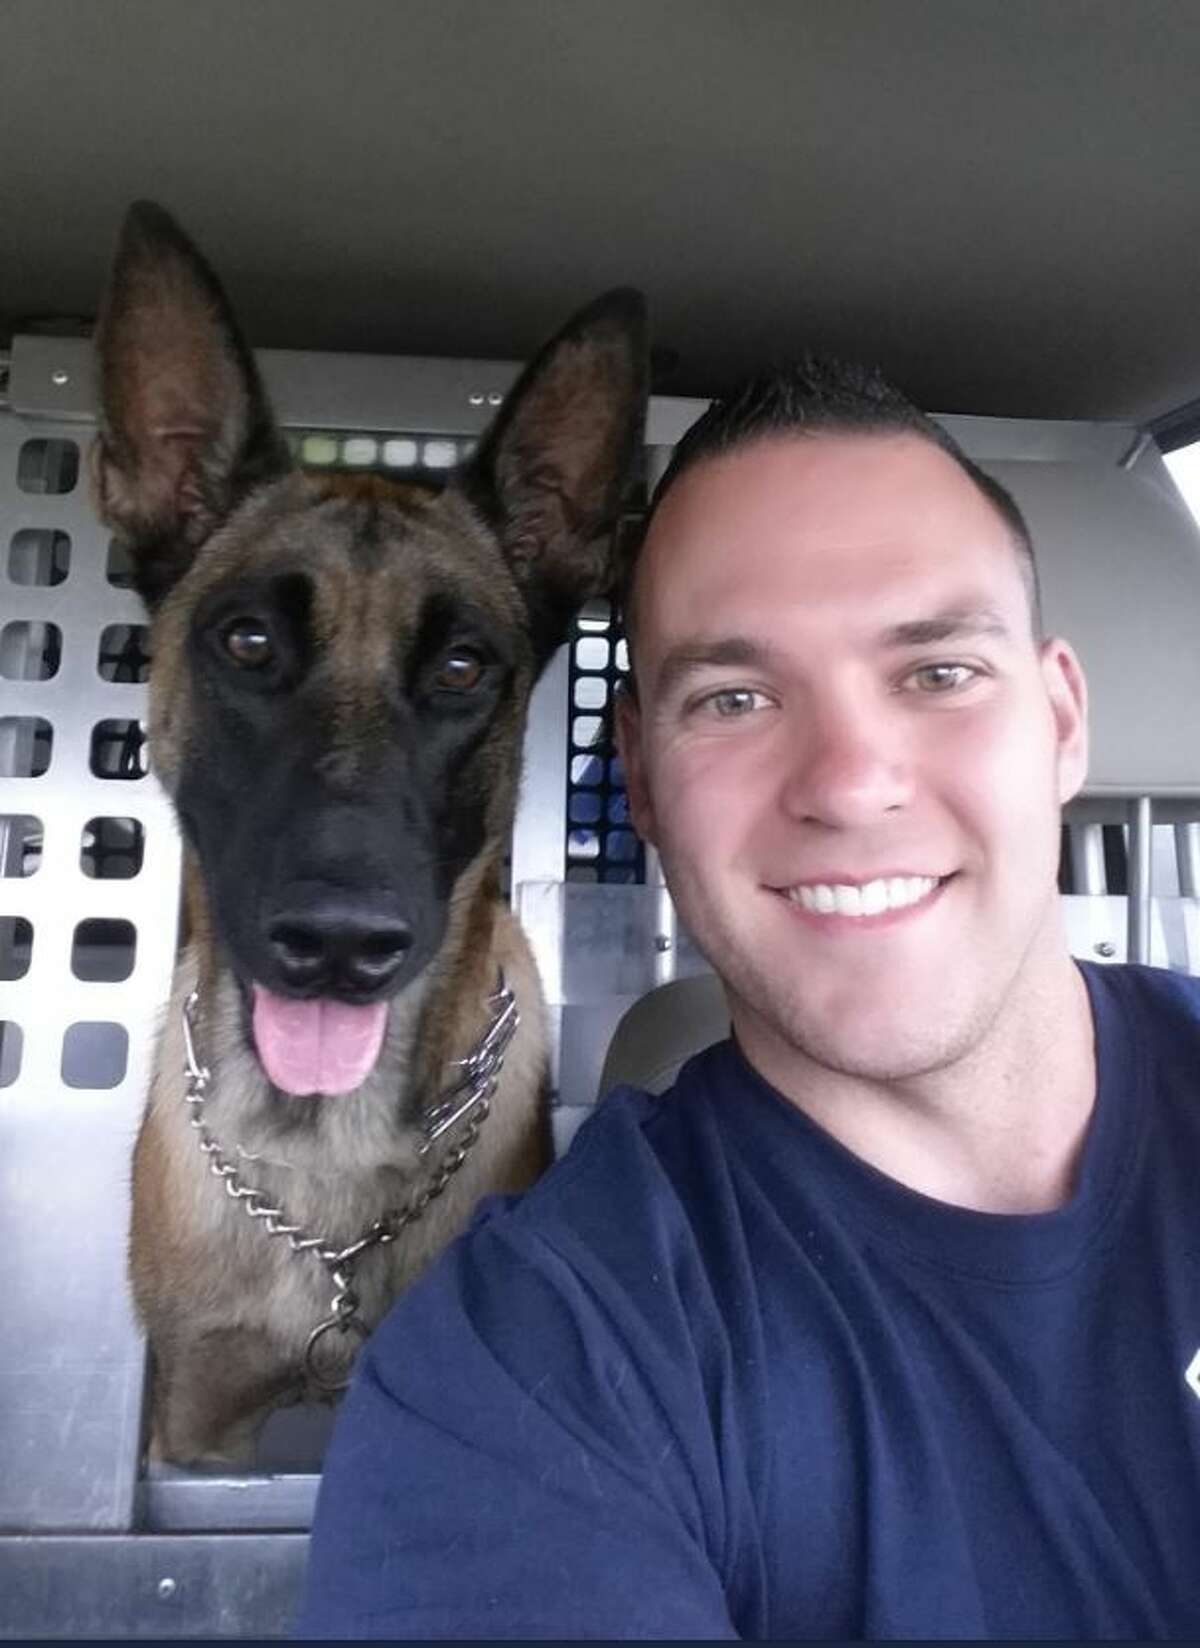 The Houston police community came together when one of their own, a K-9 officer named